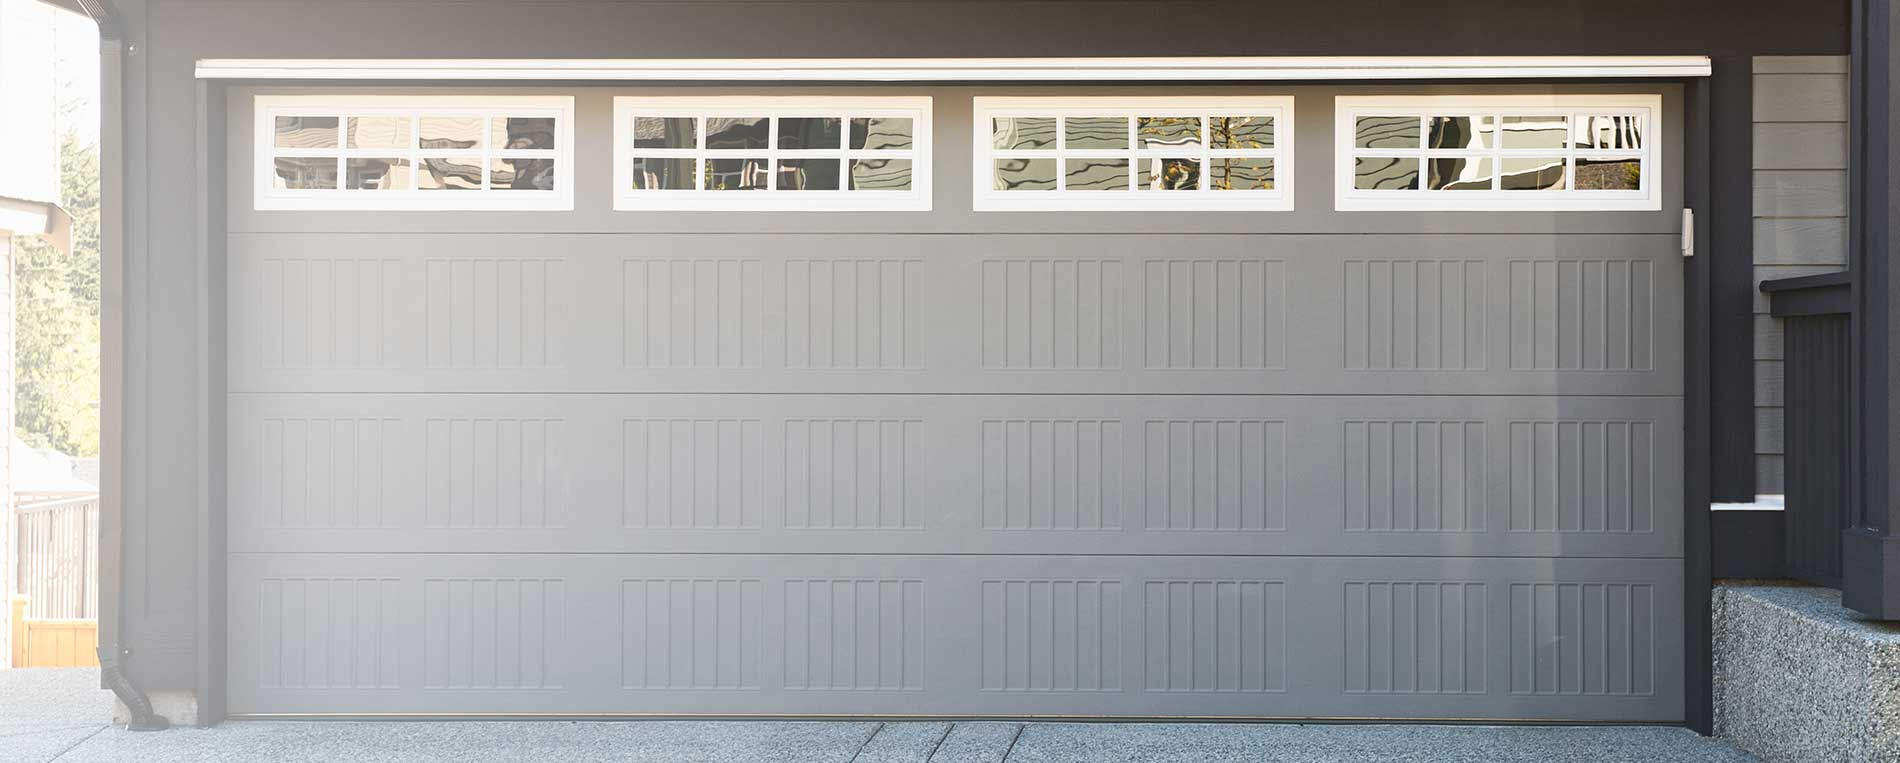 Garage Door Repair Gurnee, IL